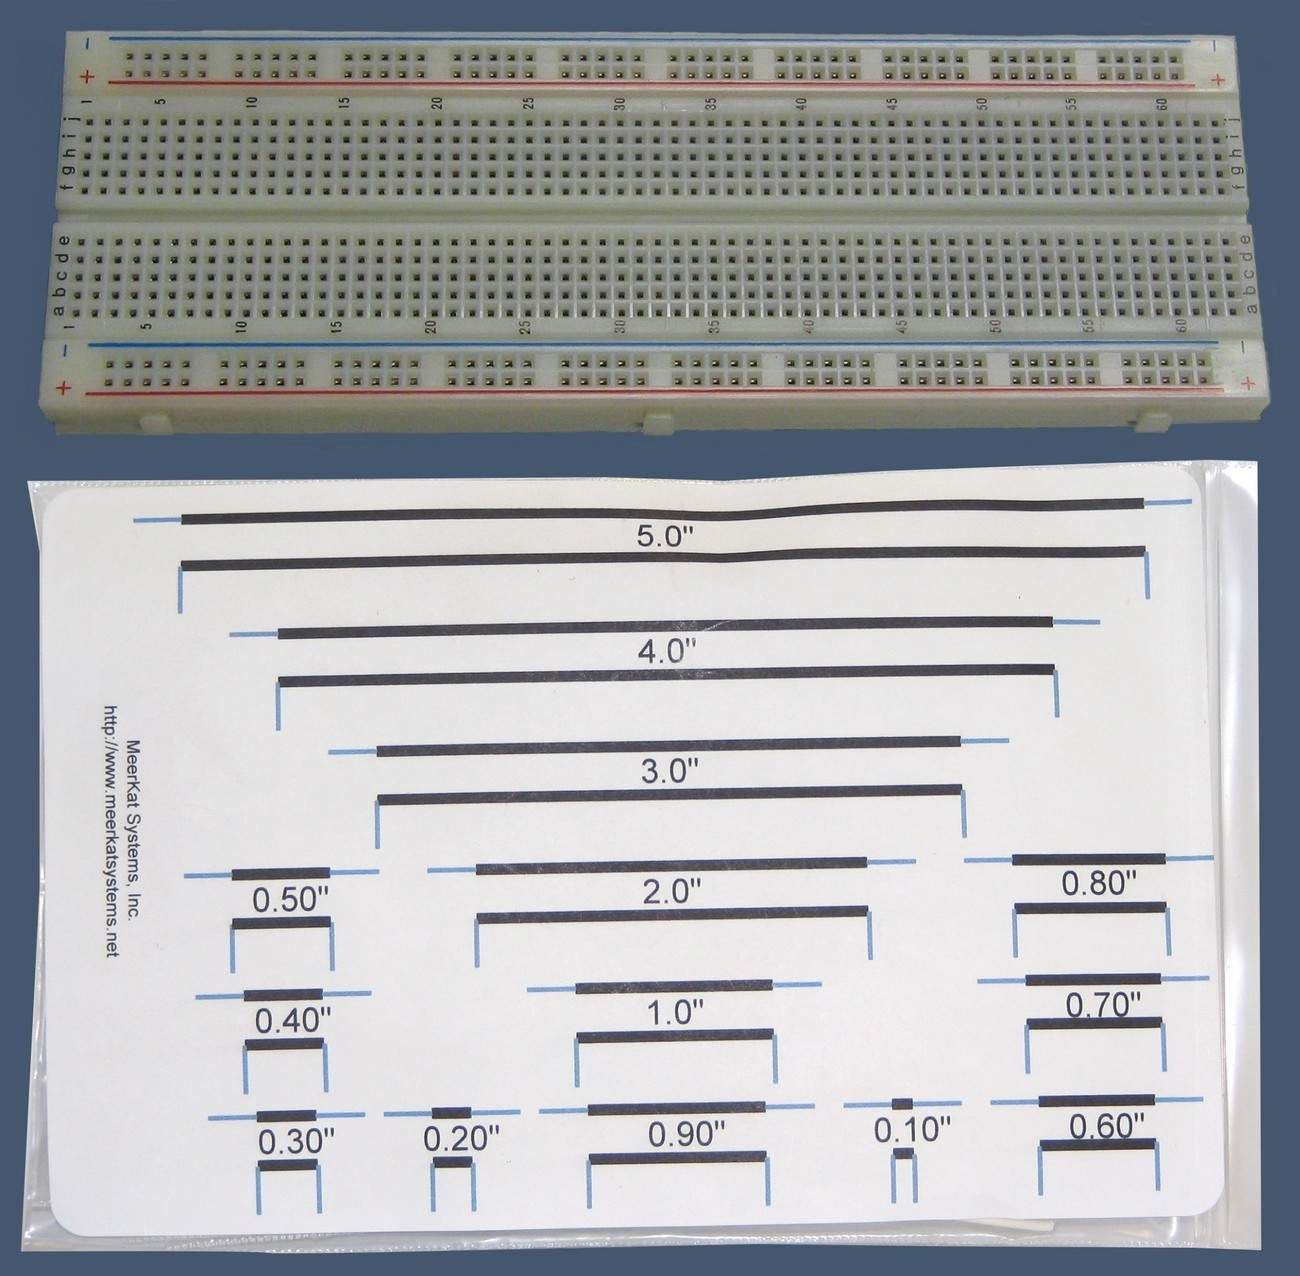 10-000-022 -Solderless Breadboard w/Wire Kit Bonanza